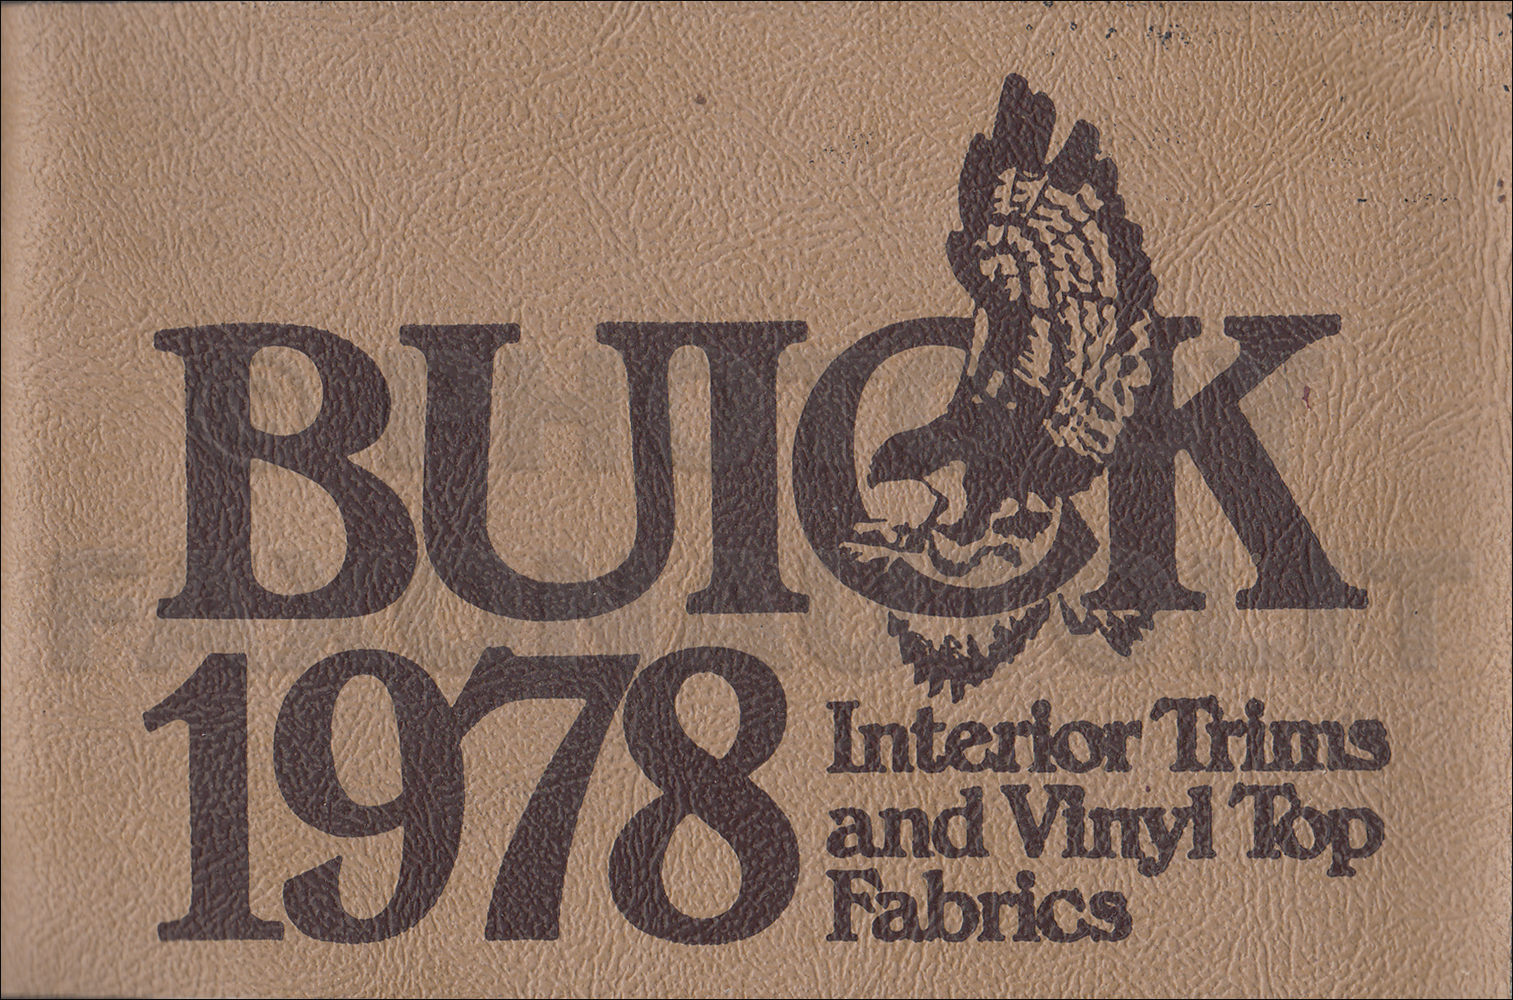 1978 Buick Repair Shop Manual Original All Models 78 Regal Wiring Diagram Upholstery Sample Dealer Album